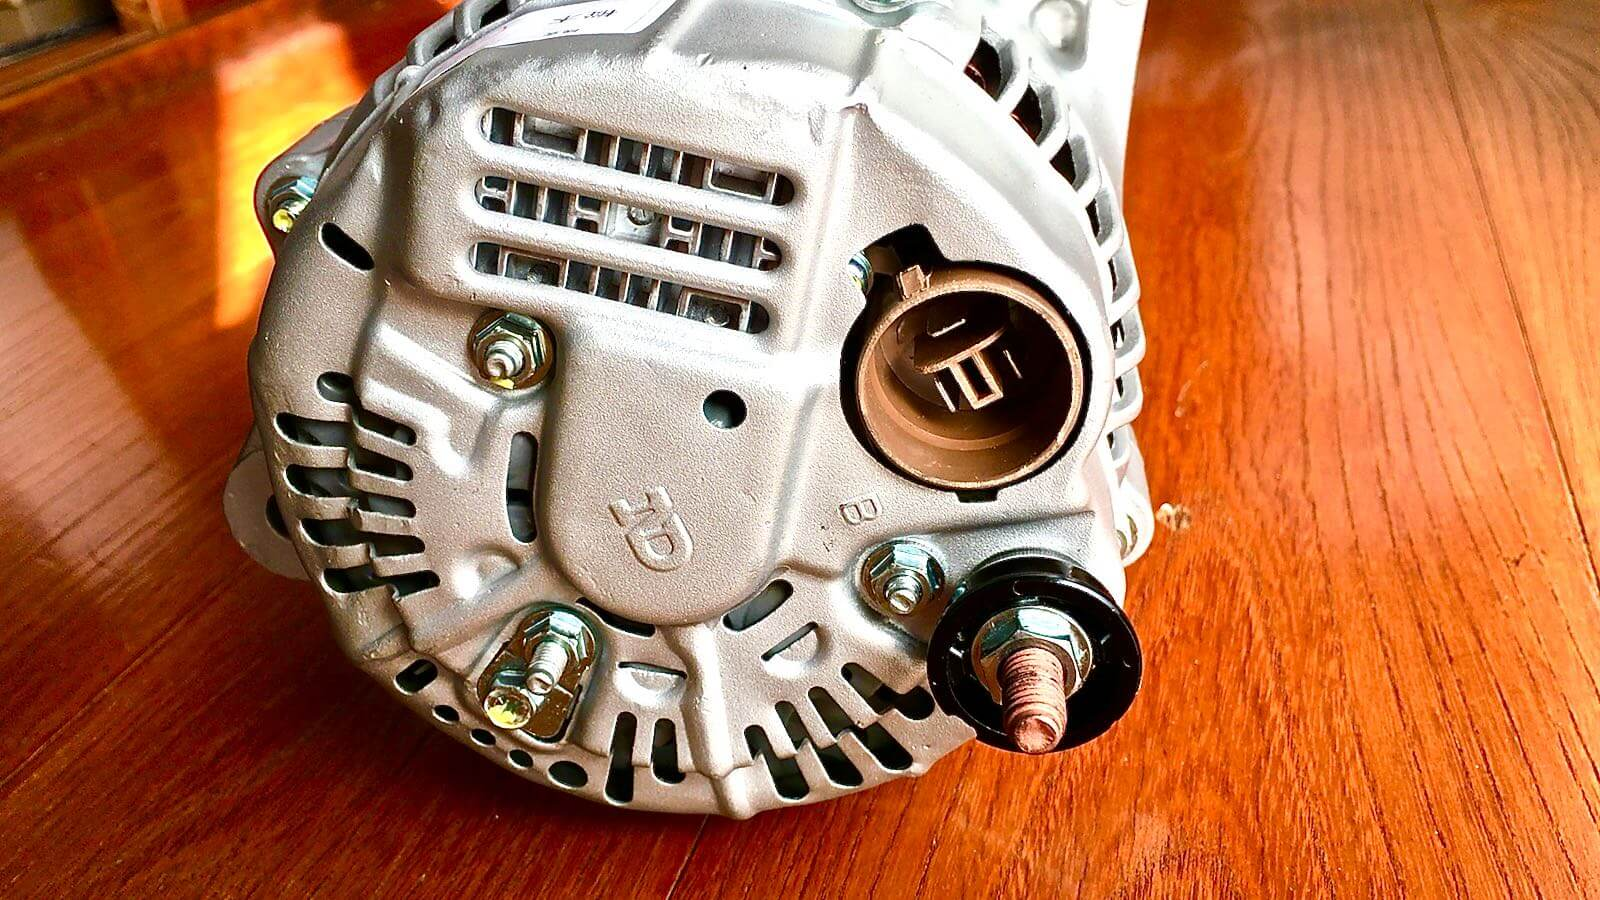 0136 MR2 Restore Plan  Part 12 07 SW20 Rebuild Alternator